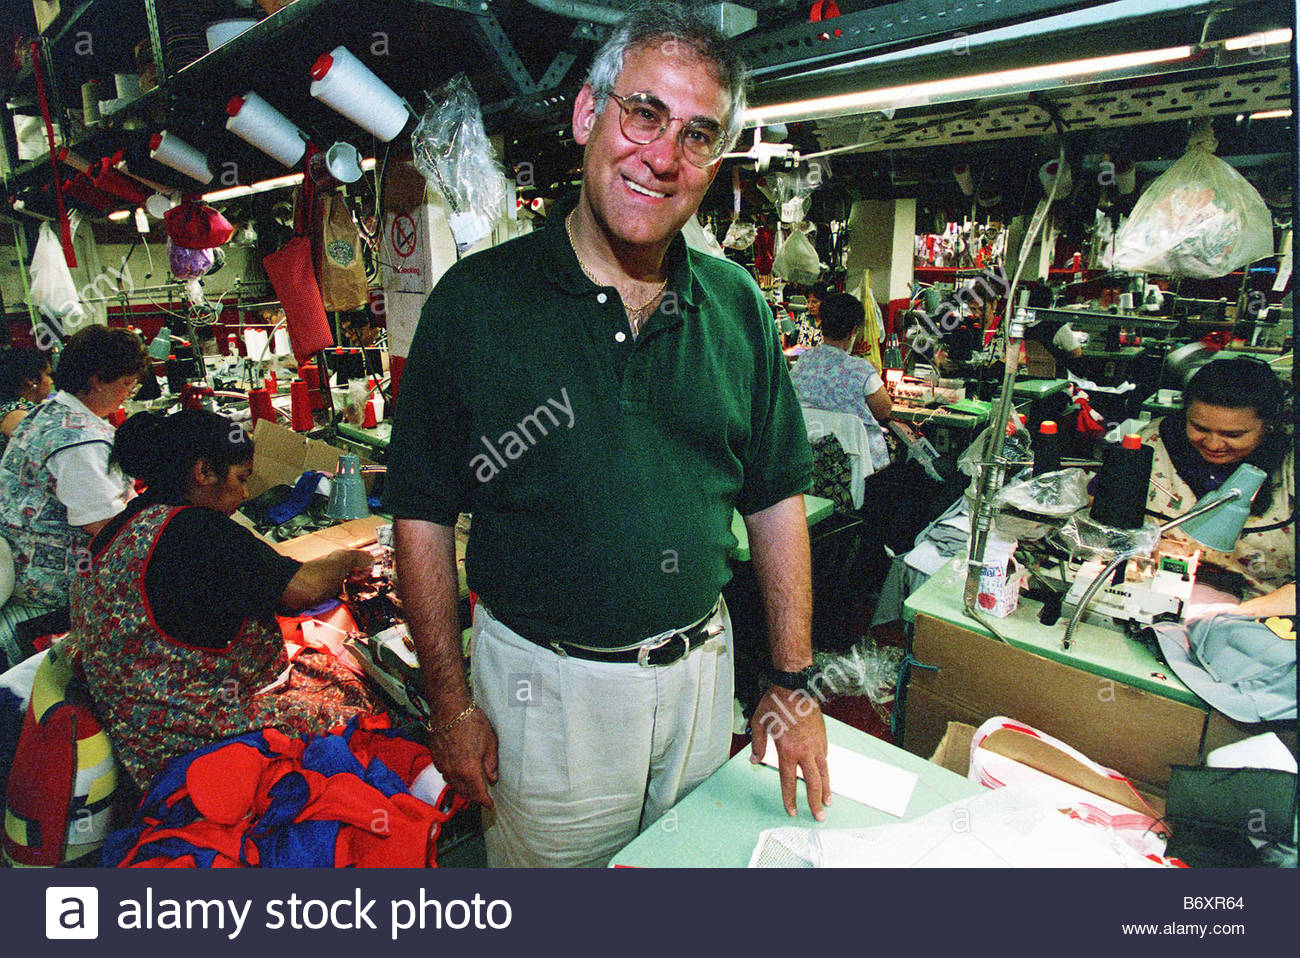 7 17 98 TARIFFS Marc P Beige president of Rubie s Costume Co stands in the company s Jamaica New York factory He said costumes should be classified by ...  sc 1 st  Alamy & 7 17 98 TARIFFS Marc P Beige president of Rubie s Costume Co stands ...